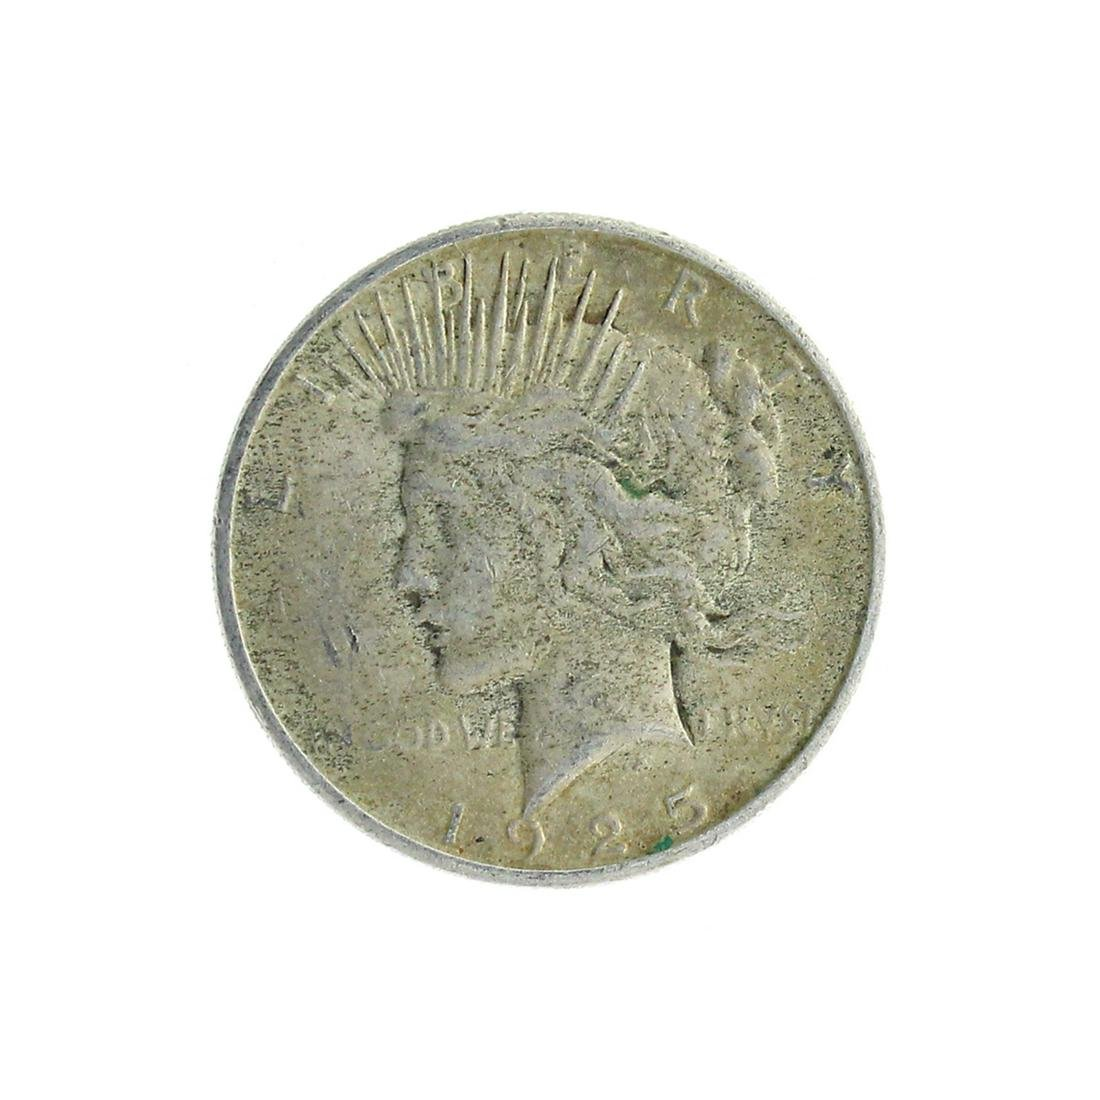 Extremely Rare 1925-S U.S. Peace Type Silver Dollar